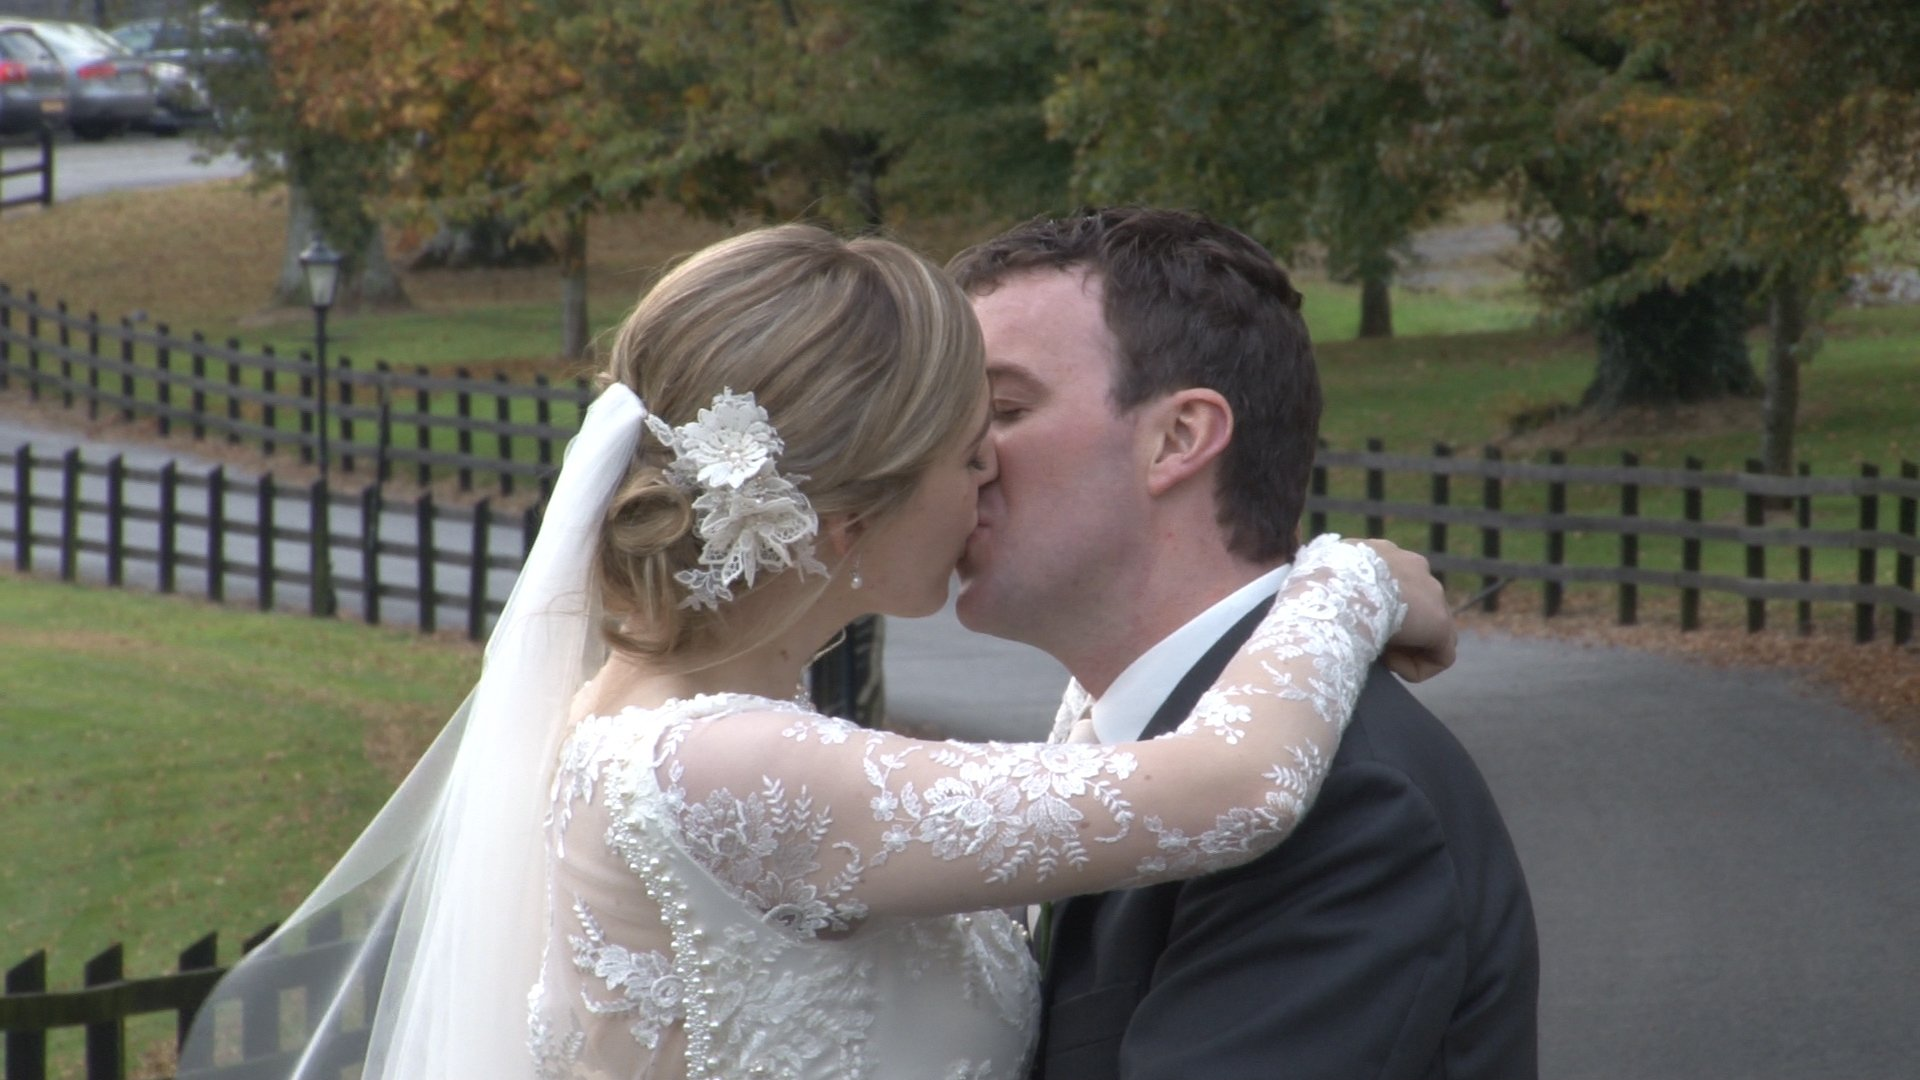 Wedding Video Siobhan and Brian, by Gaffey Productions